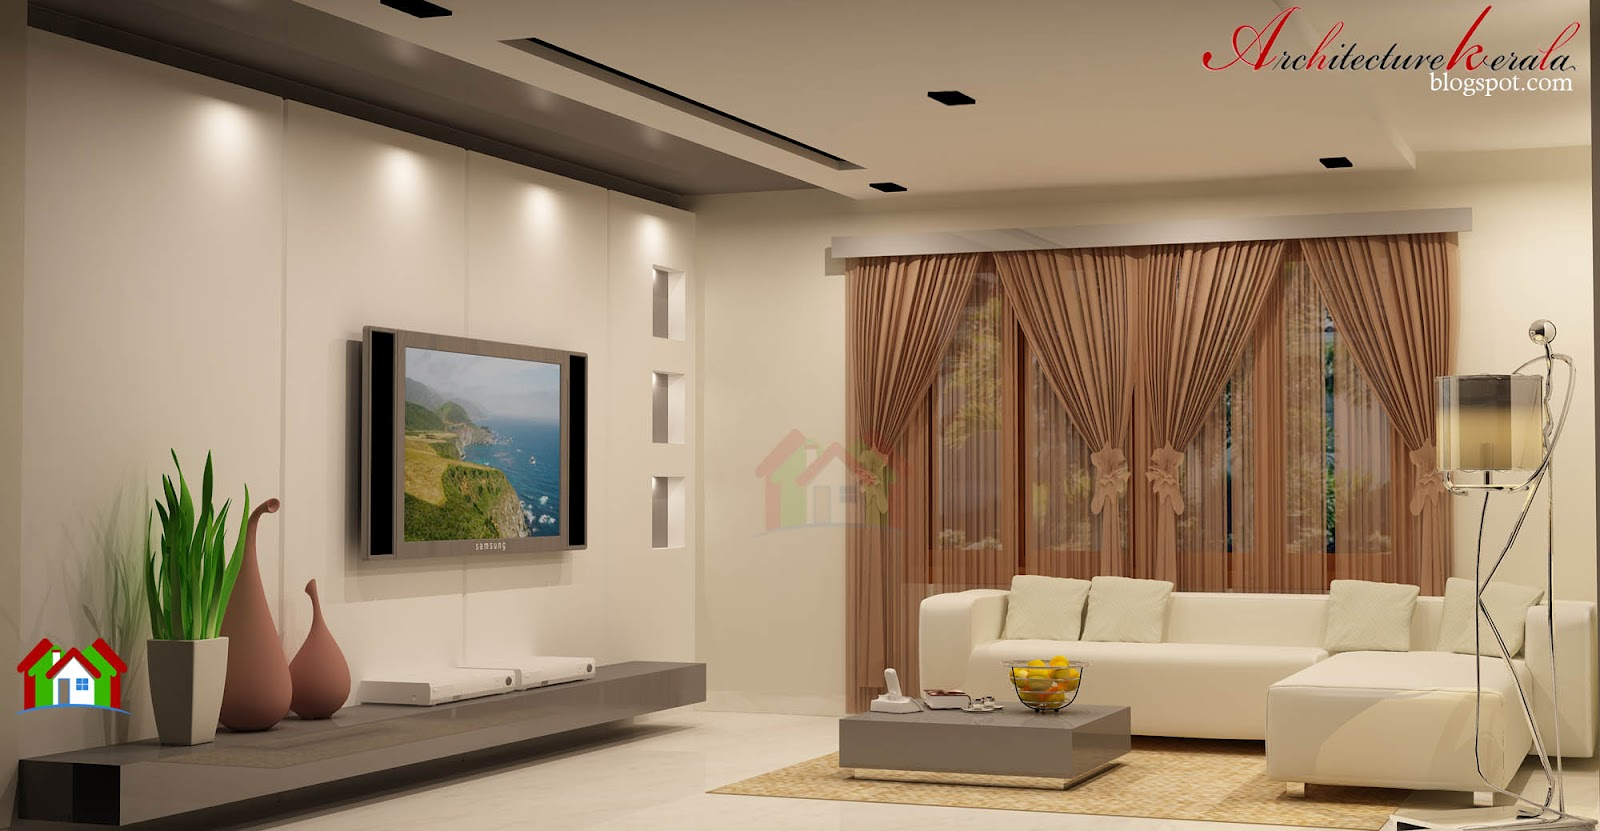 Interior design of living room architecture kerala for Kerala house living room interior design